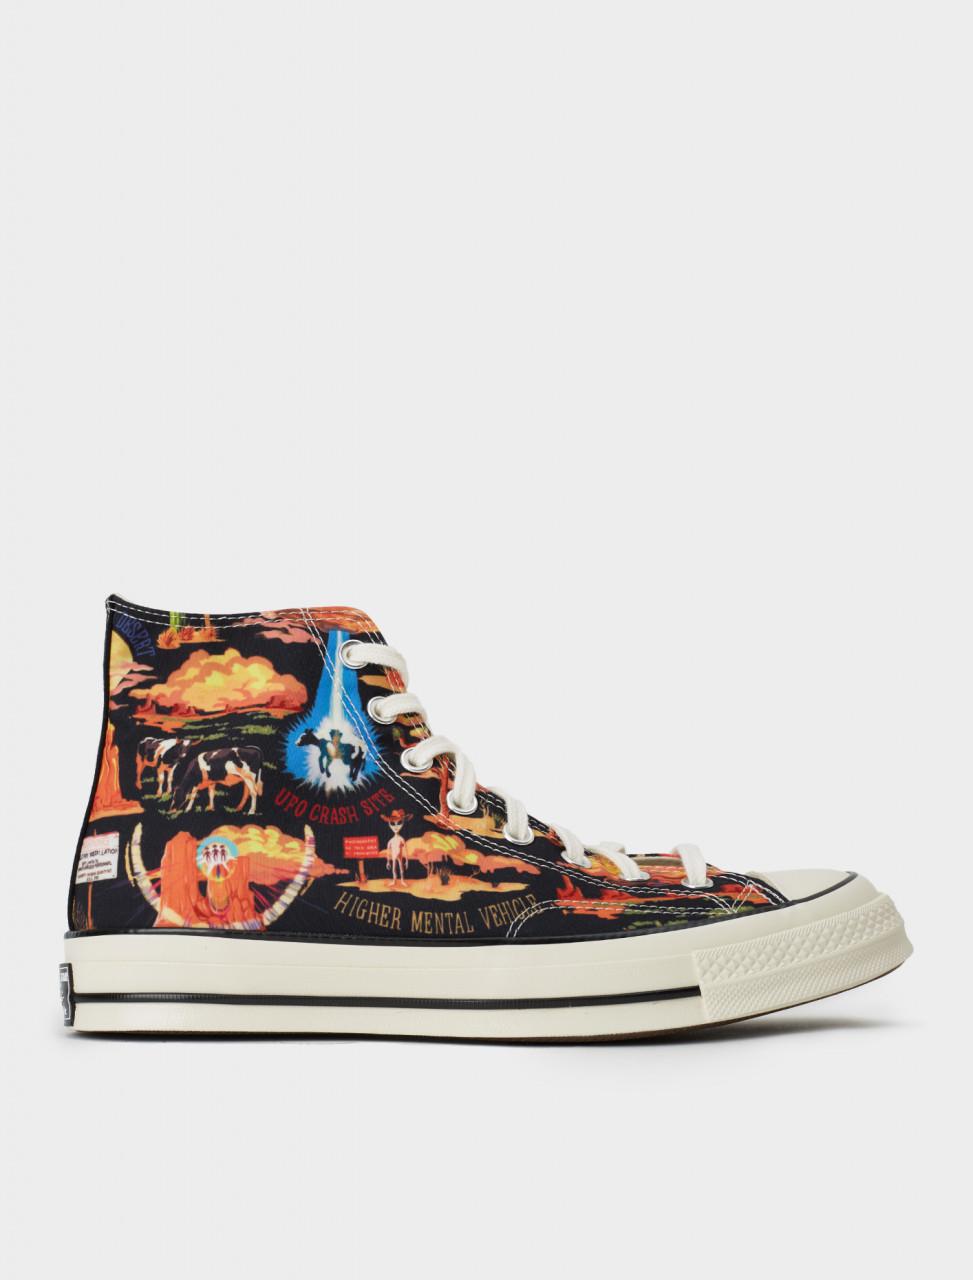 Converse Twisted Resort Chuck 70 High Sneaker in Black Multi Egret